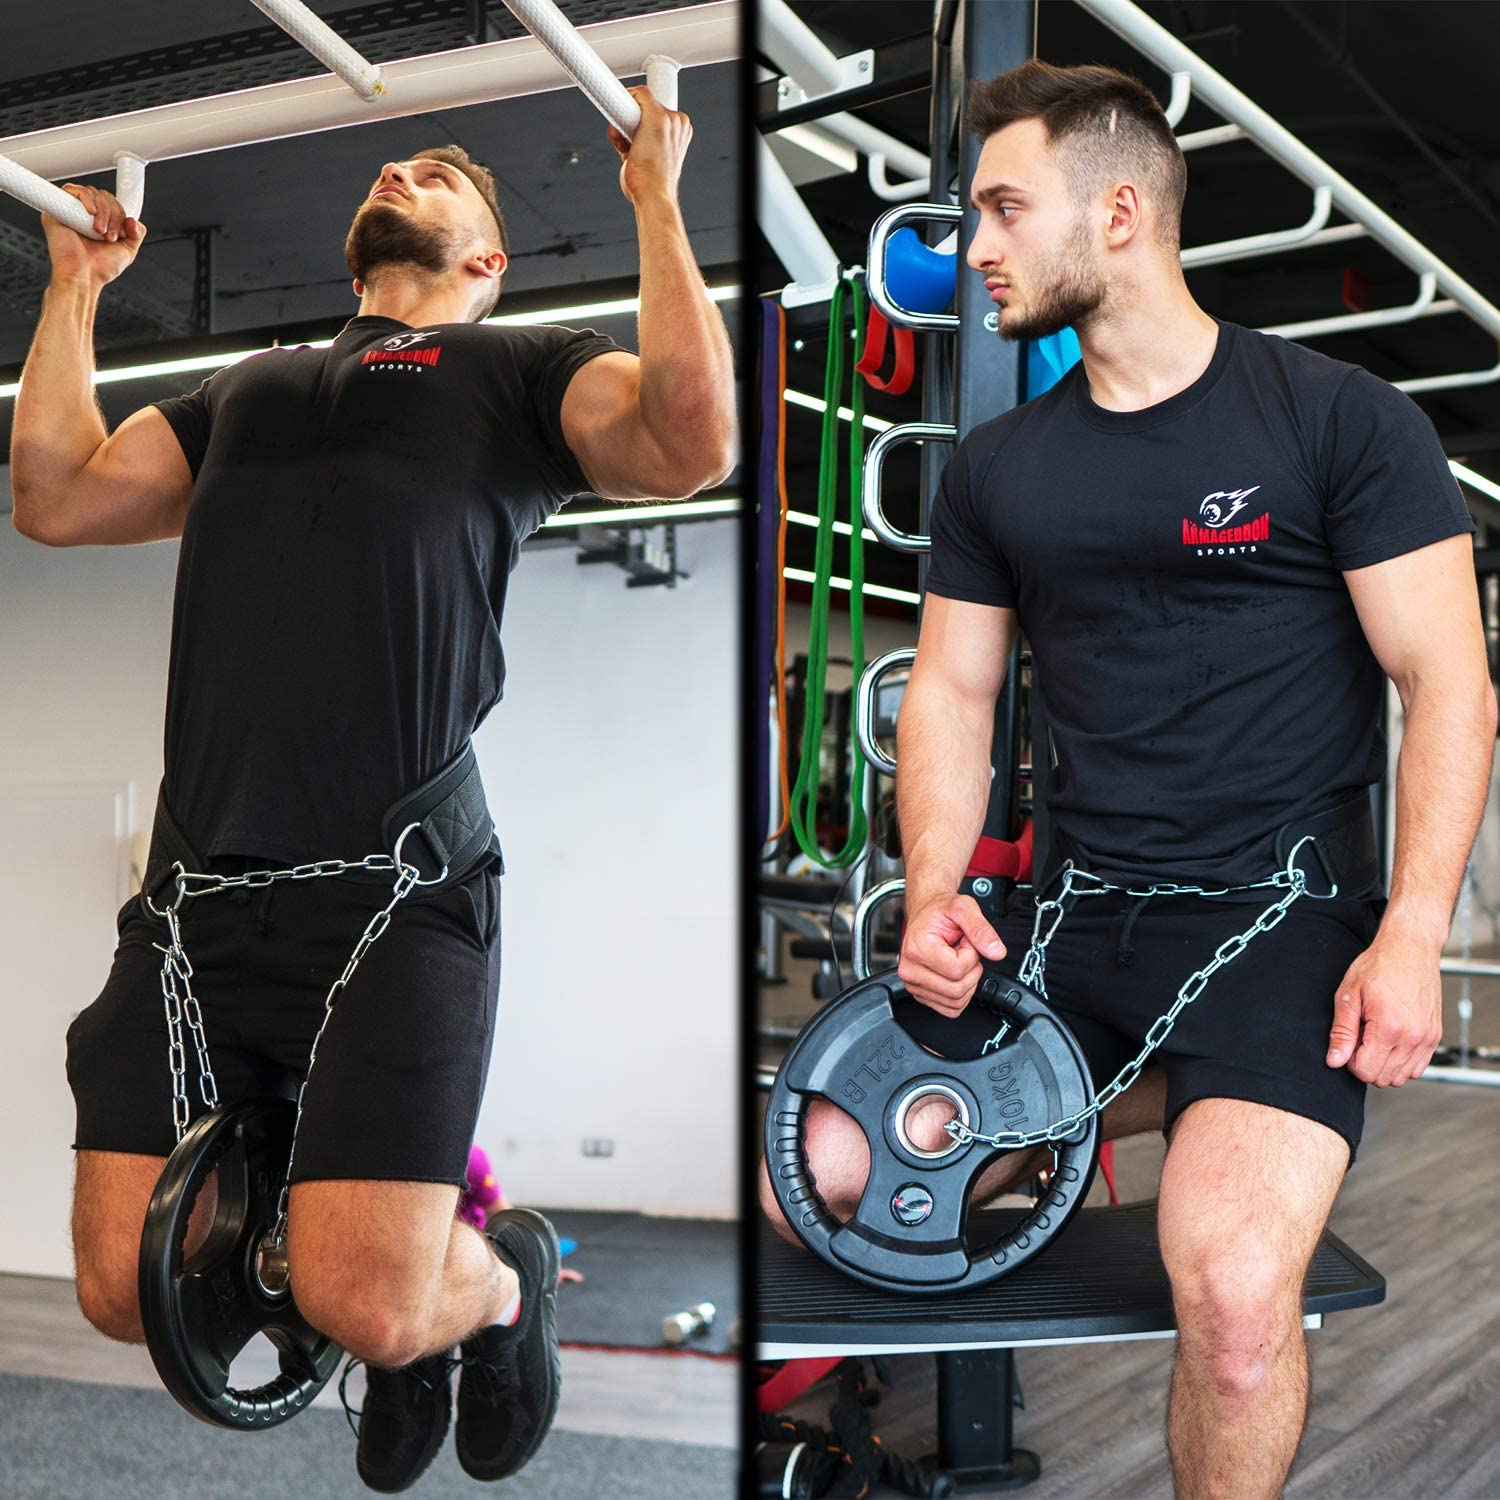 Details about  /Weight Lifting Belt Thick Pull Up Chain Neoprene Dipping Fitness Gym Training